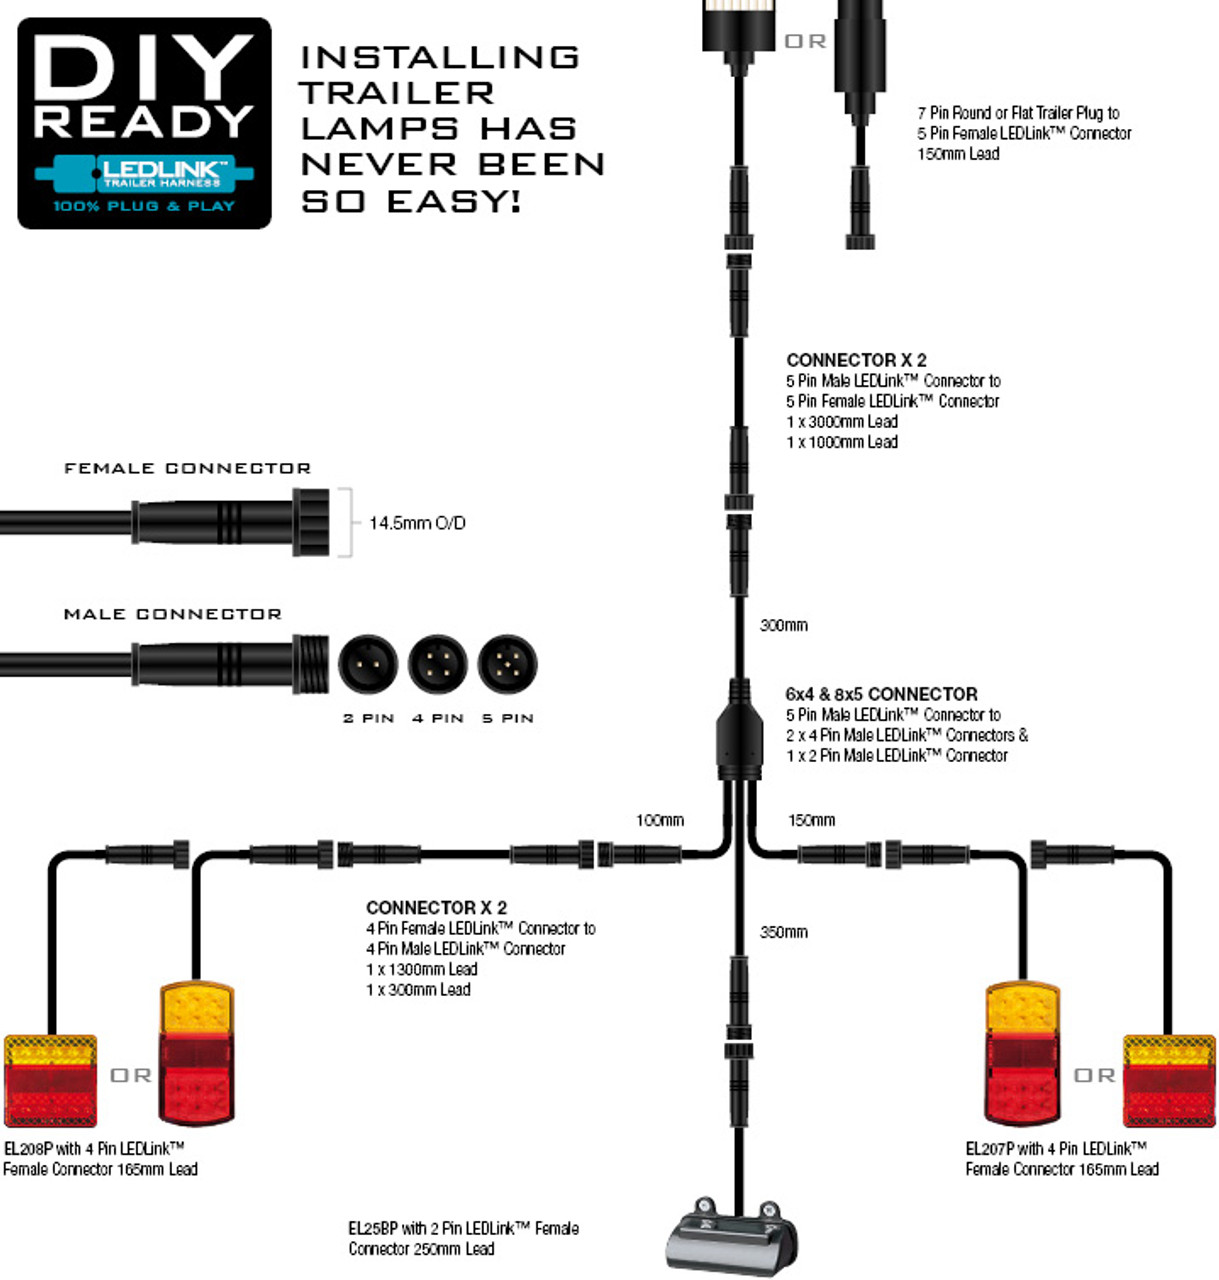 Easy as 1, 2, 3. The Square Tail Lights with this kit. This is a plug and play system.